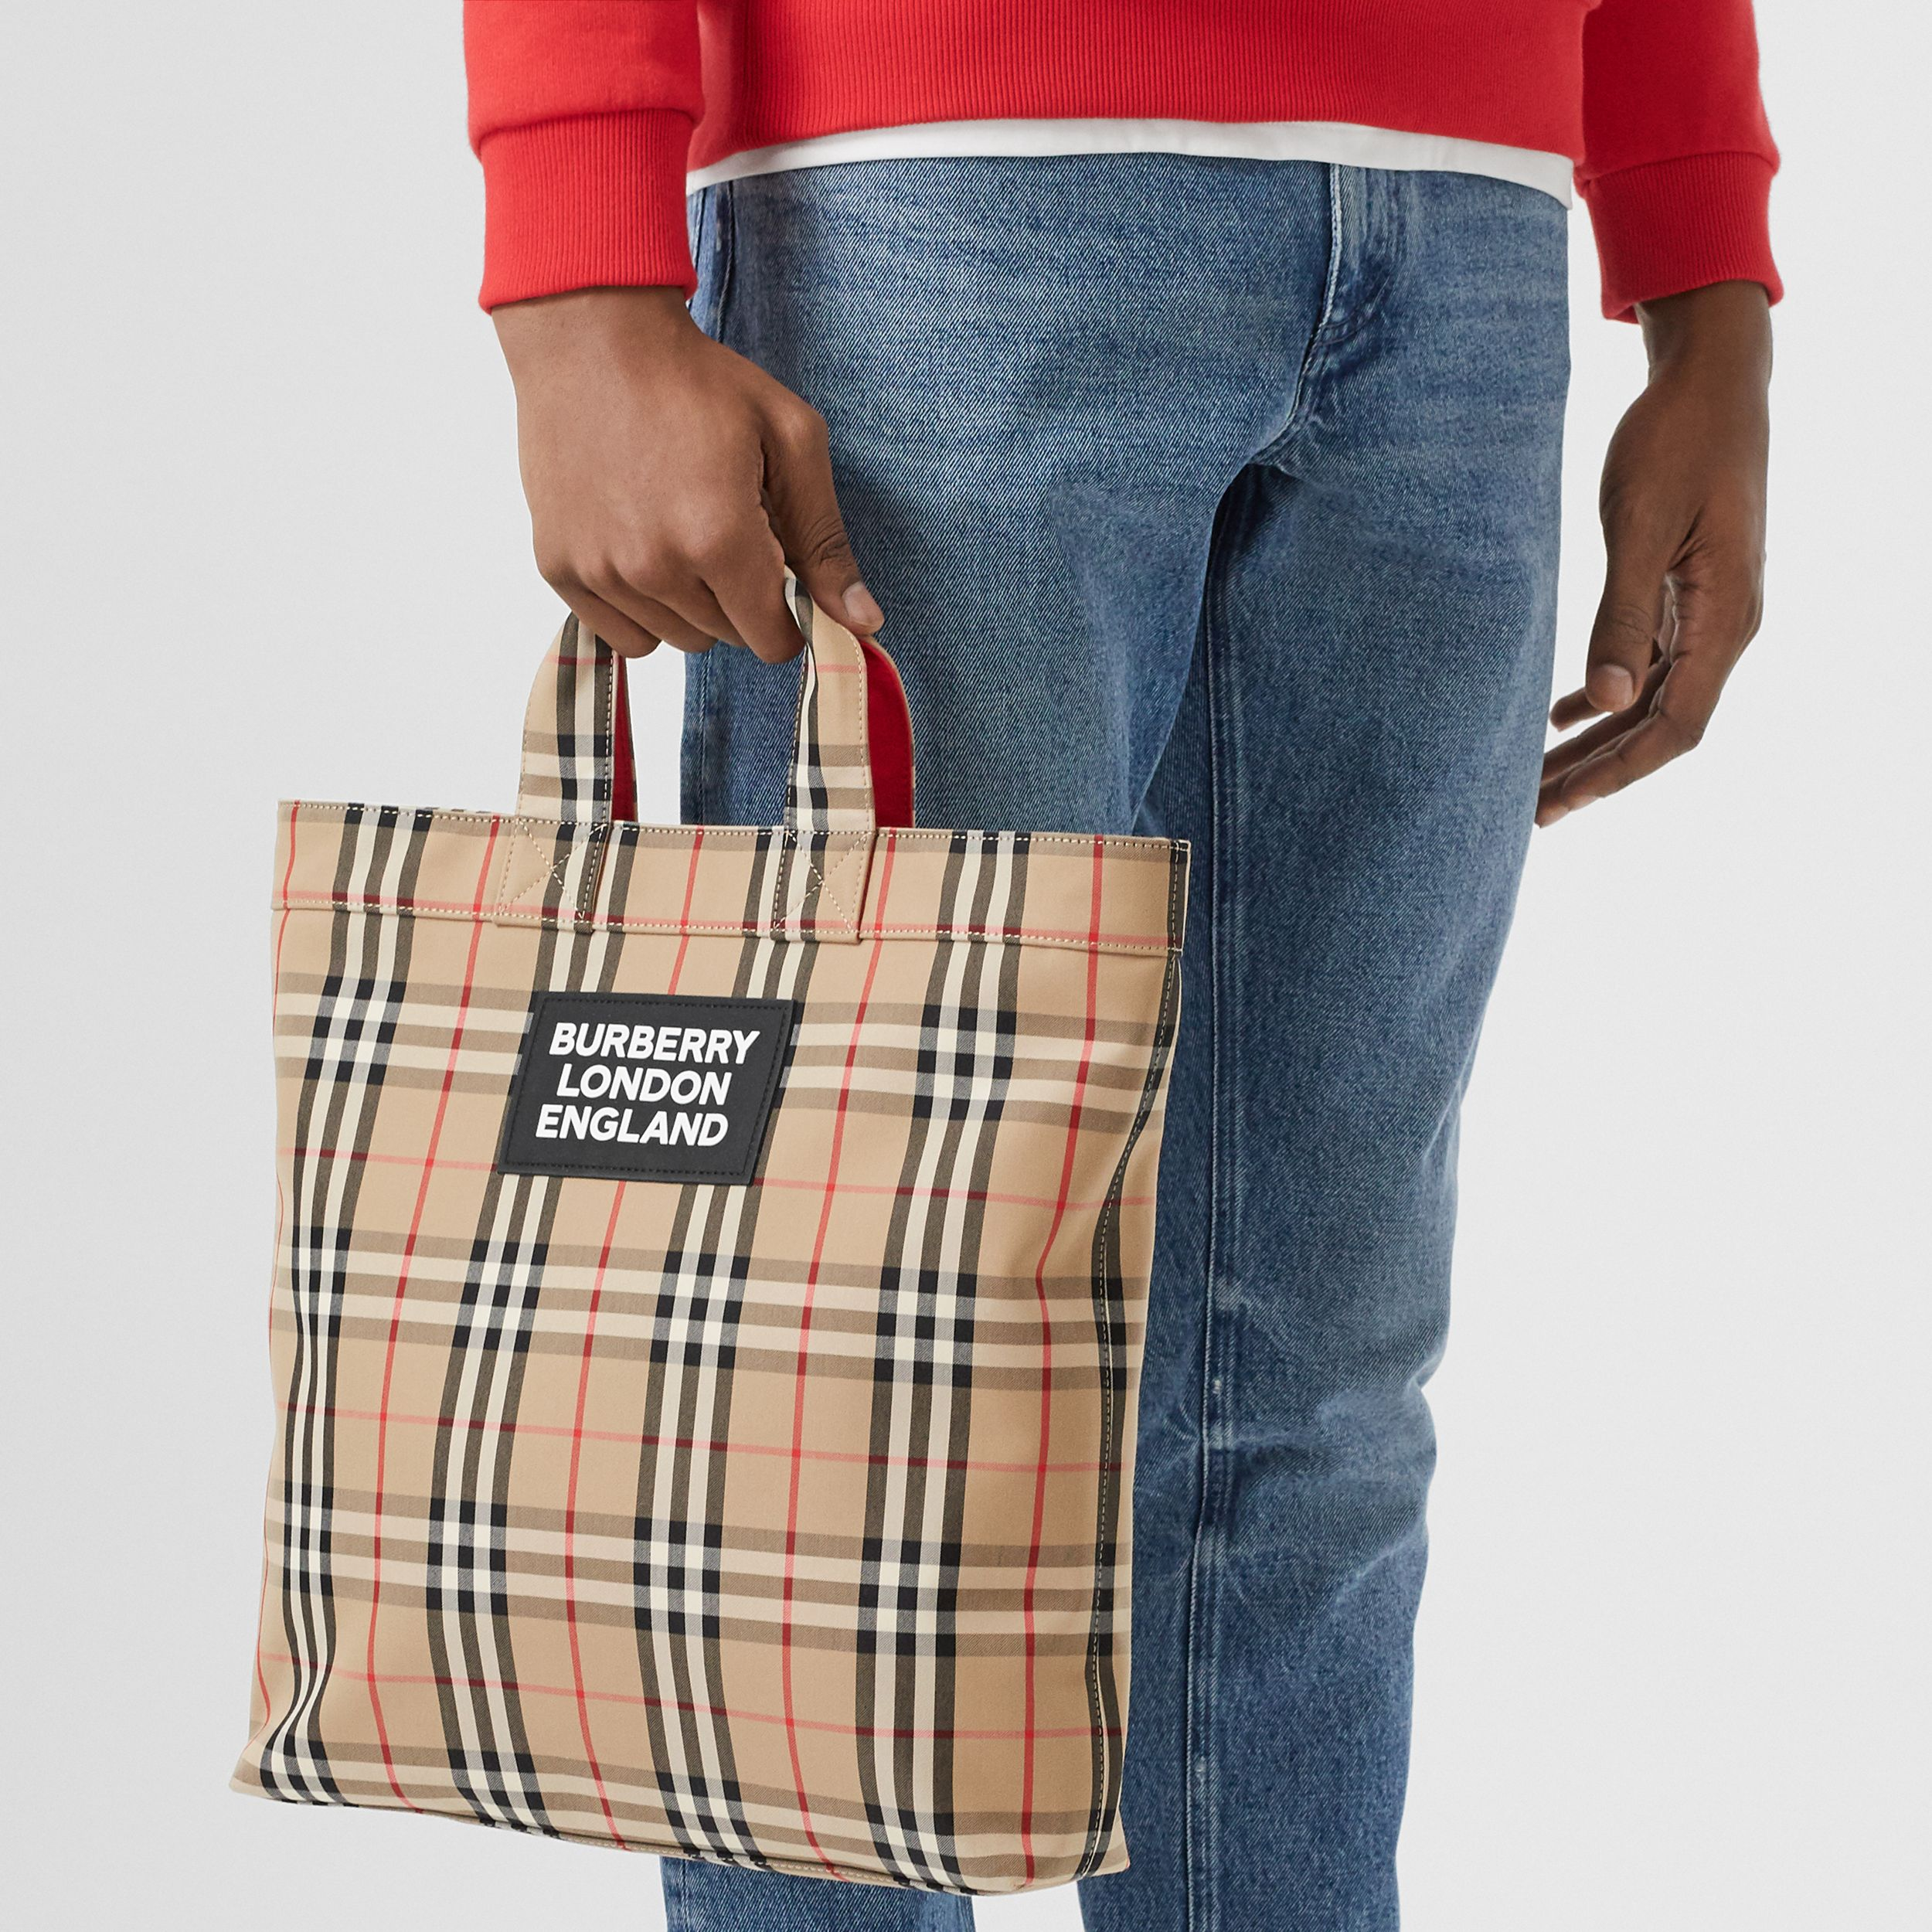 Logo Appliqué Vintage Check Cotton Blend Tote in Archive Beige - Men | Burberry United Kingdom - 3